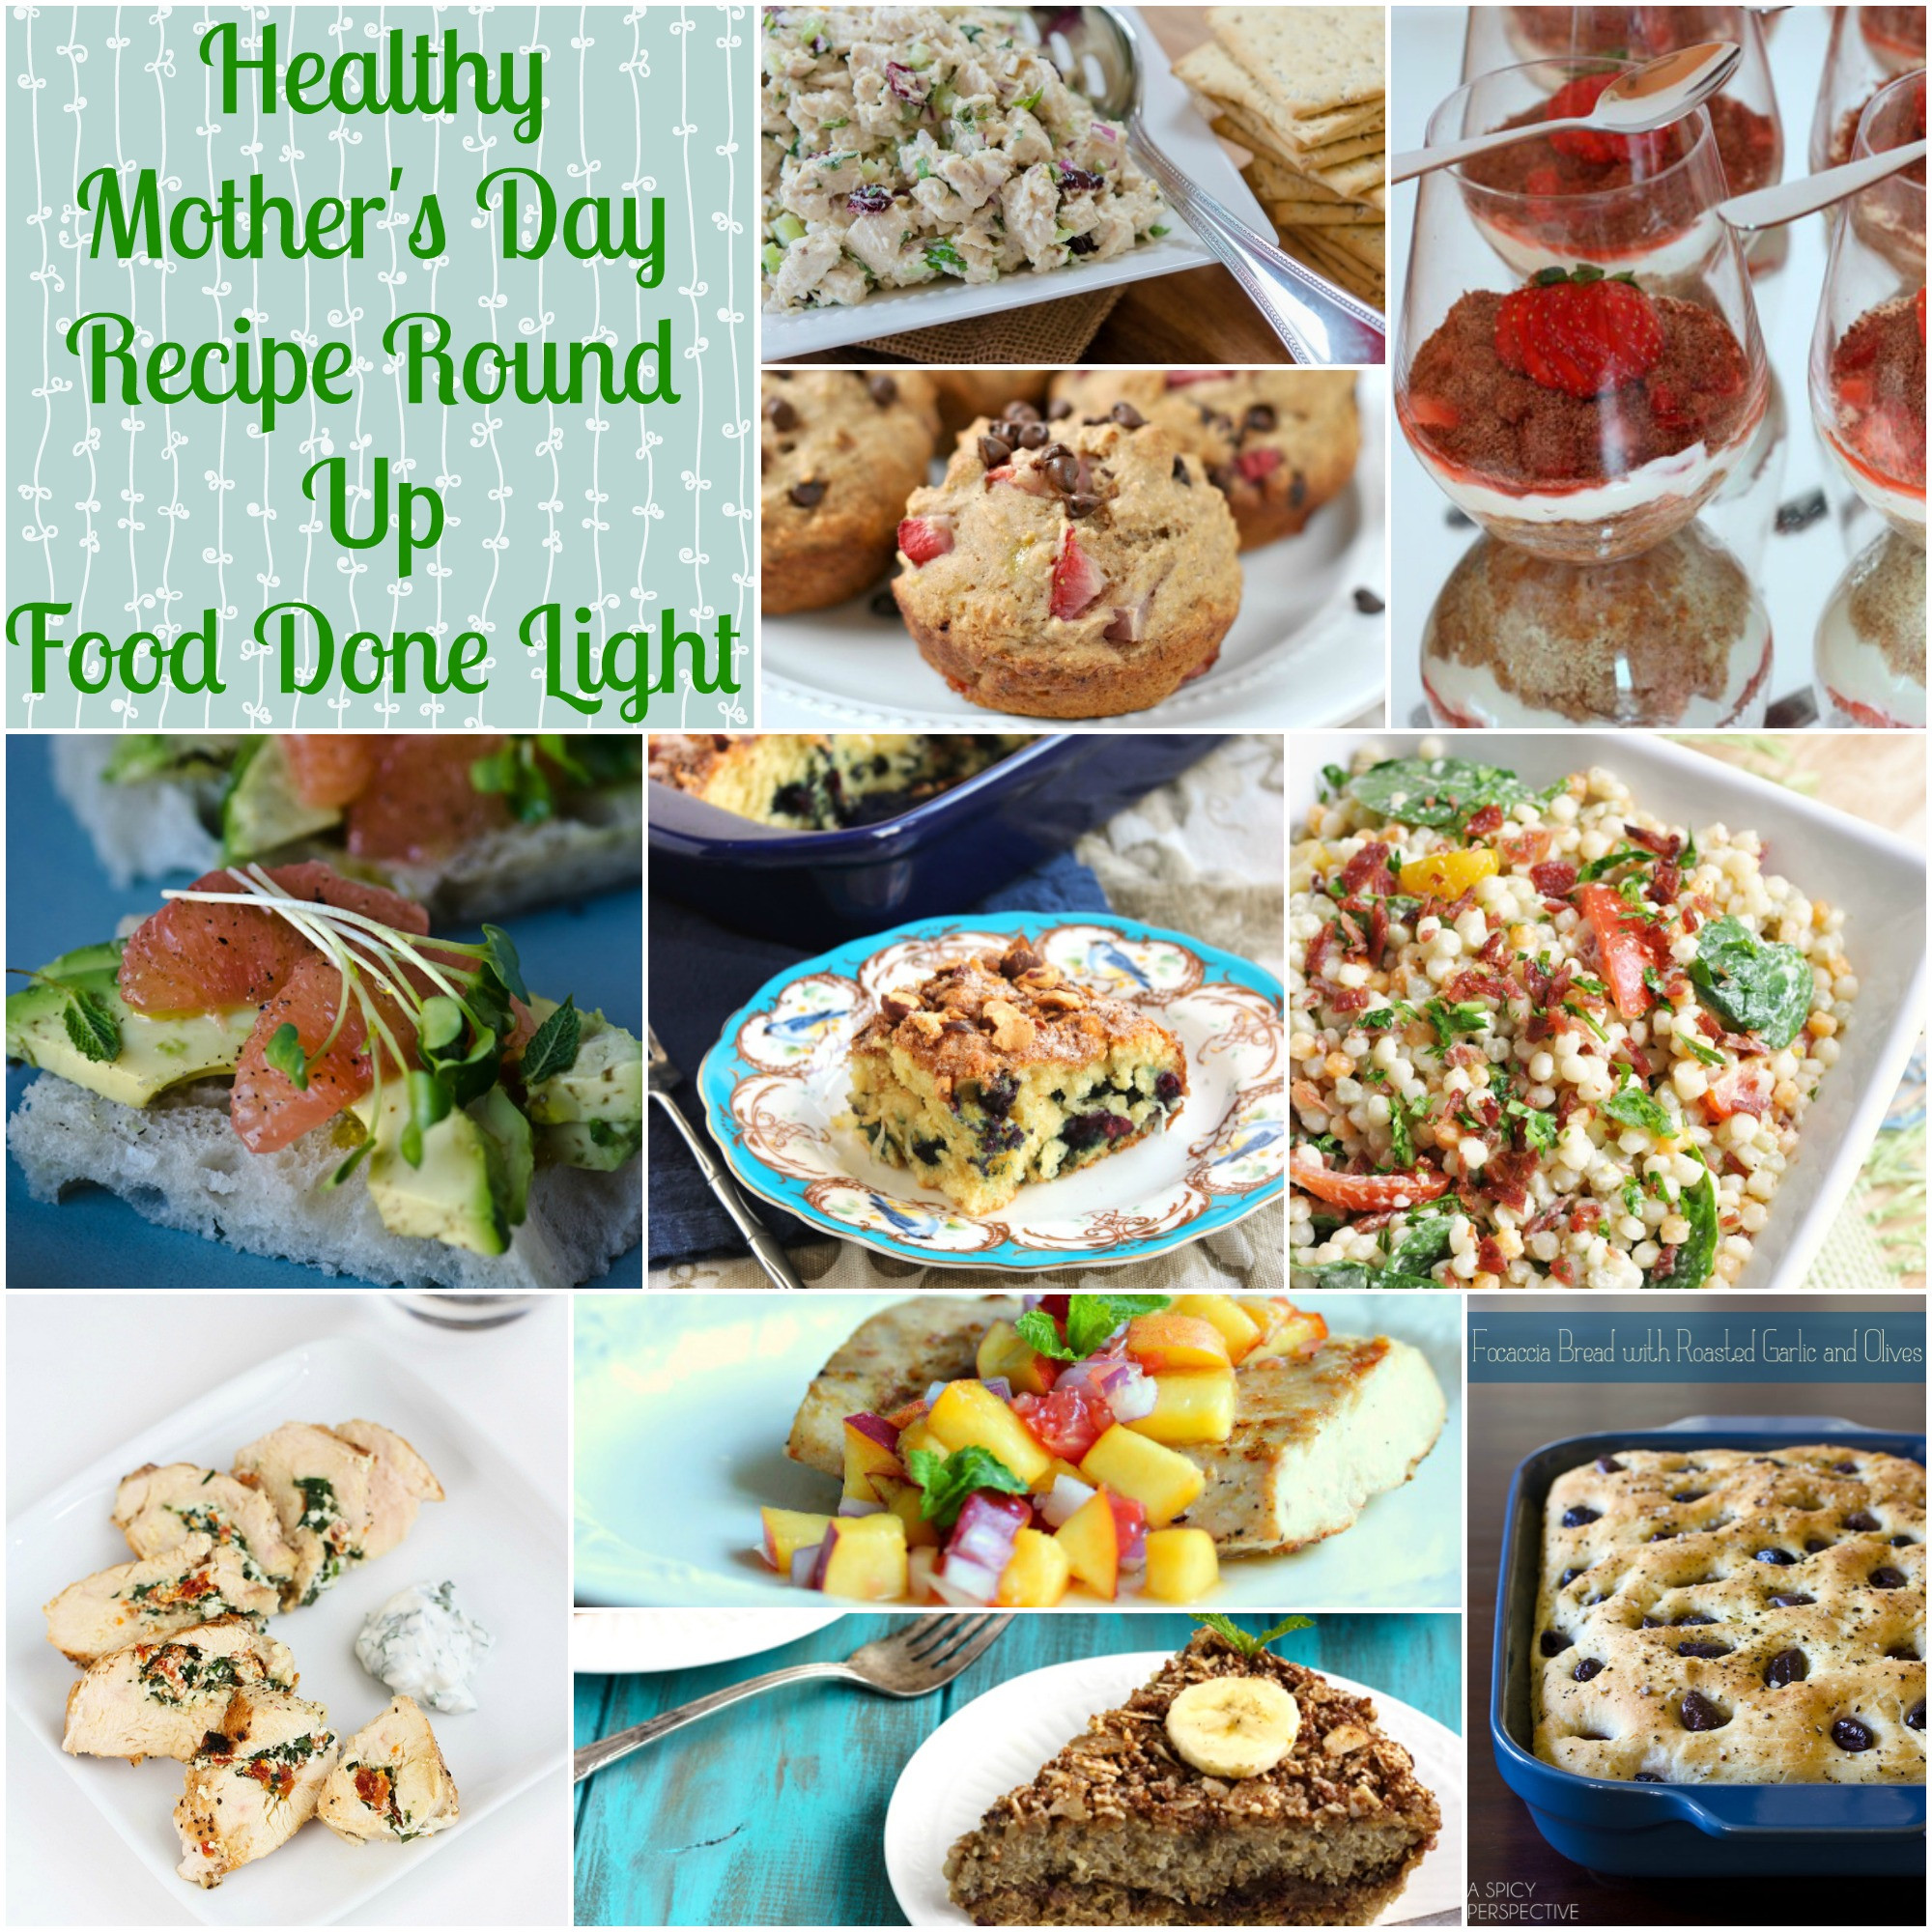 Mothers Day Dinner Recipe  Healthy Mother s Day Recipe Round Up Food Done Light